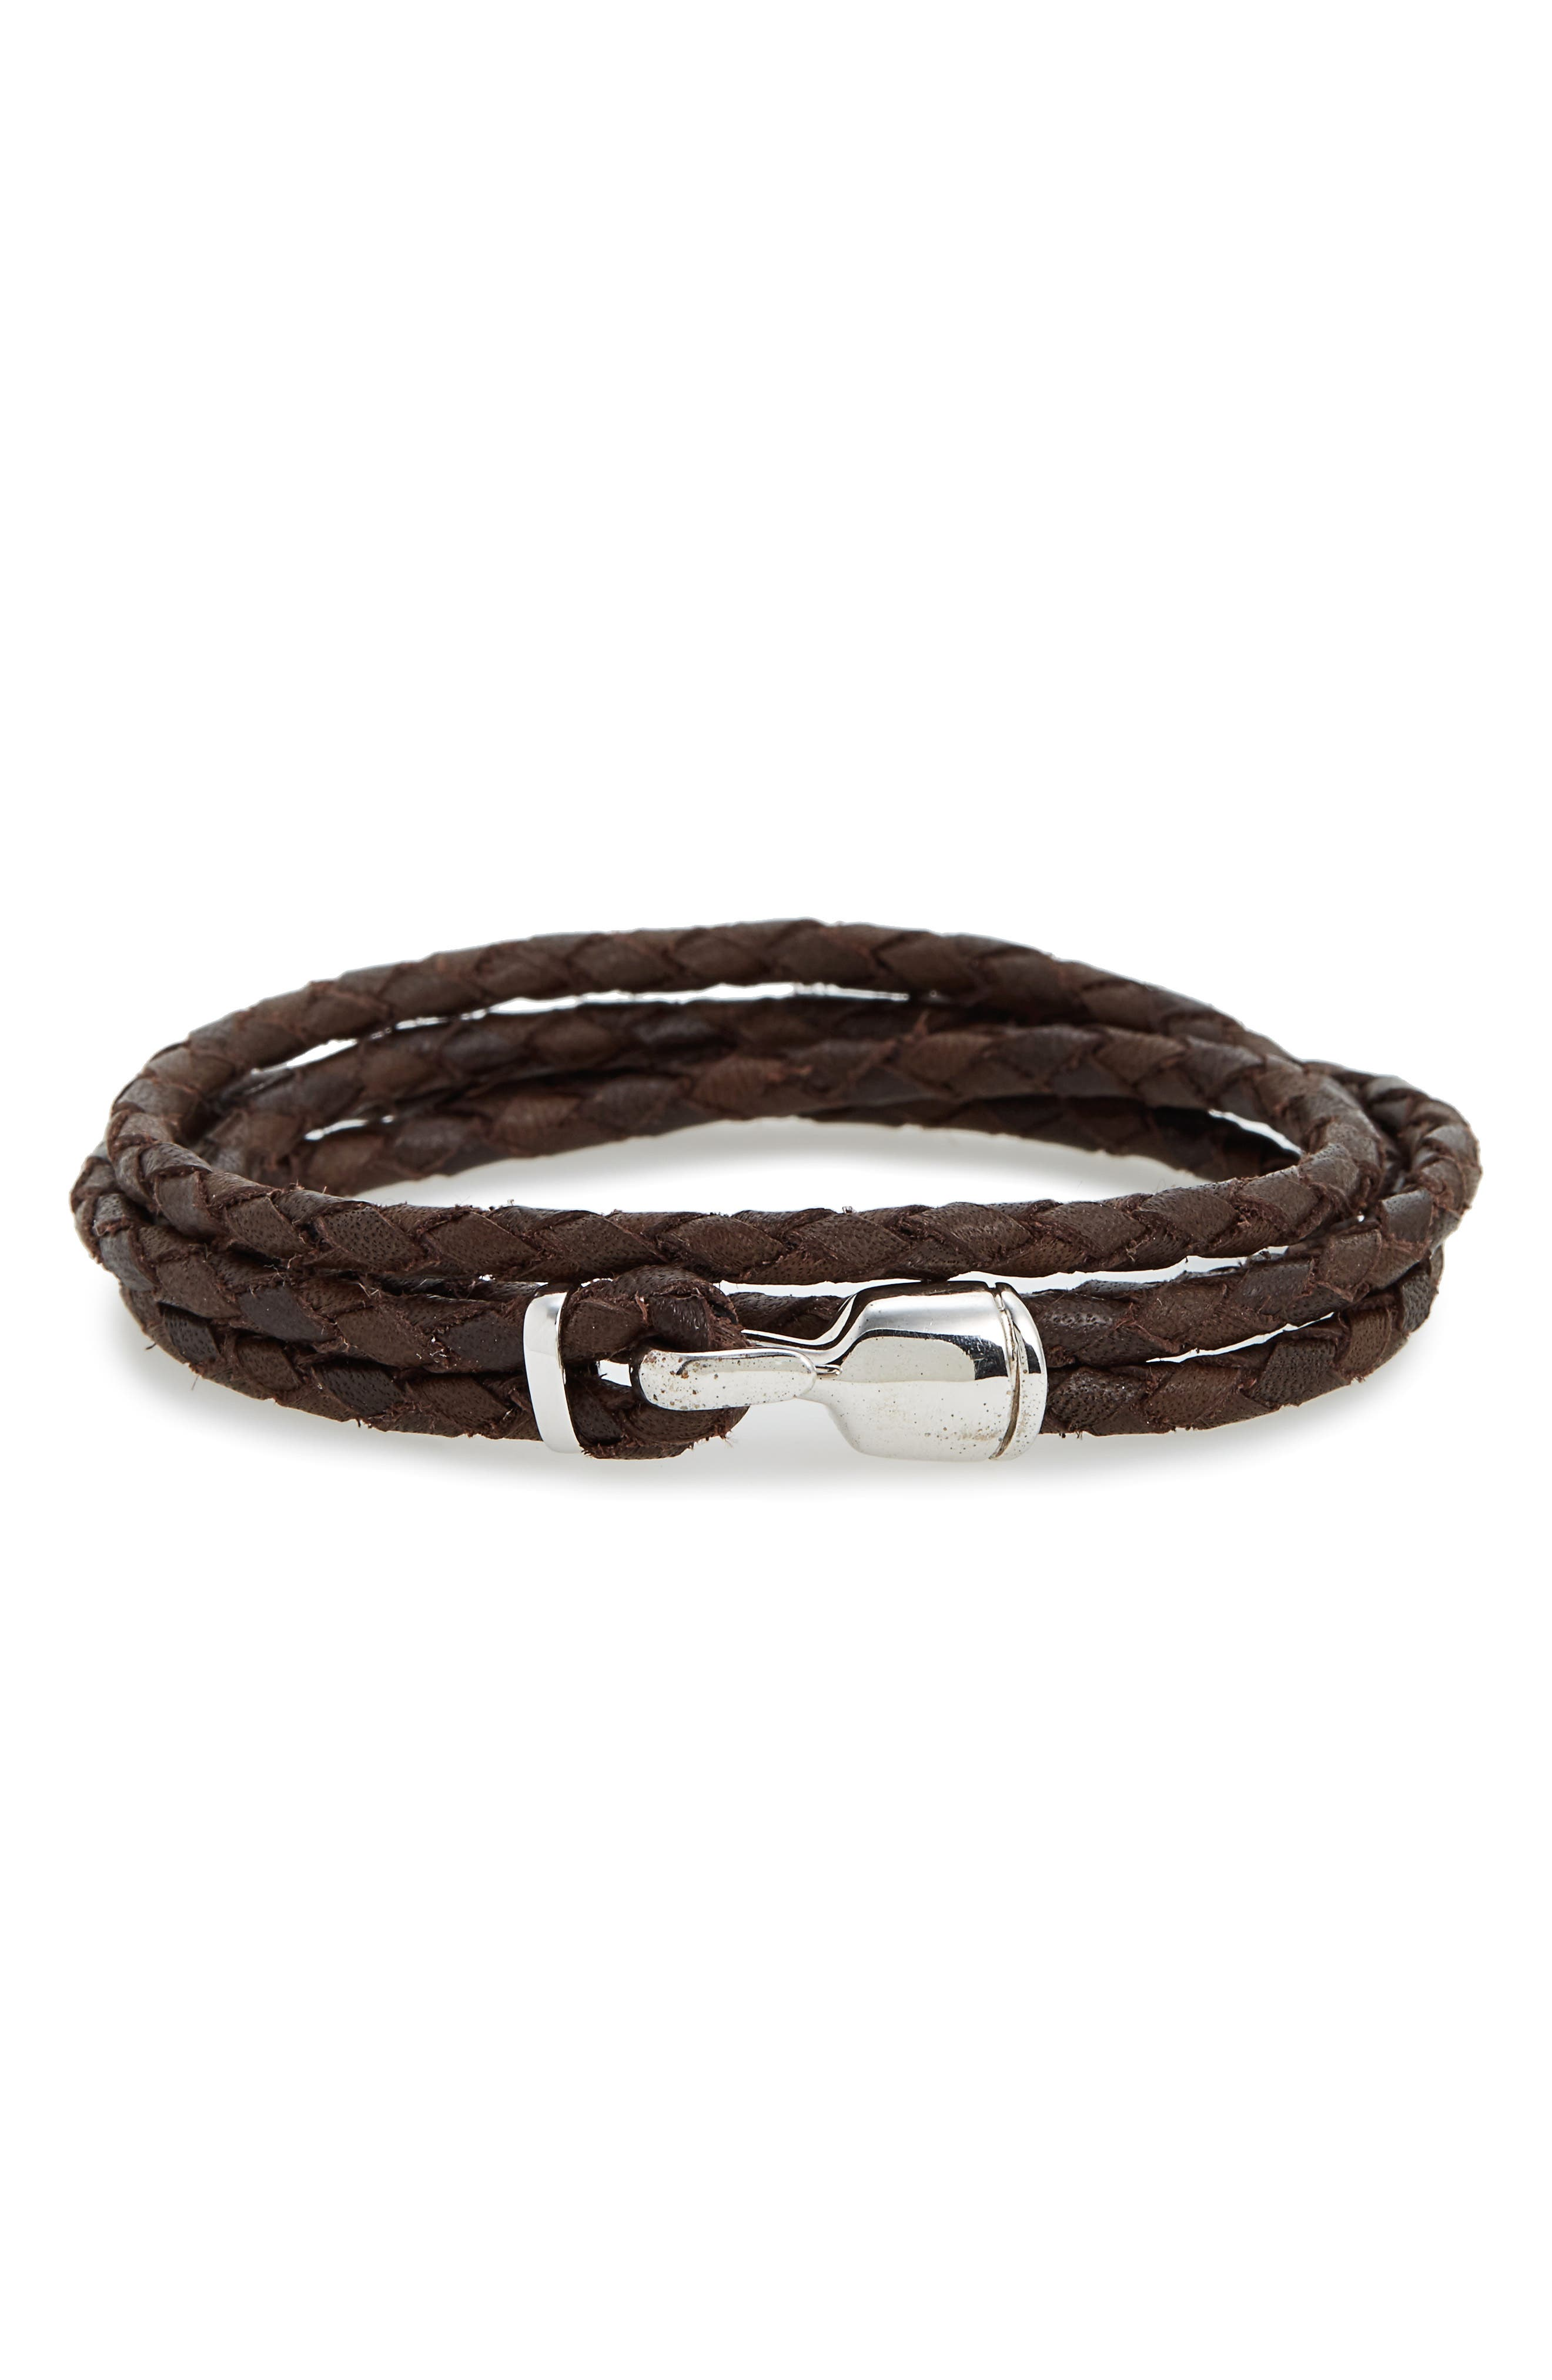 Trice Braided Leather & Sterling Silver Bracelet,                         Main,                         color, Brown